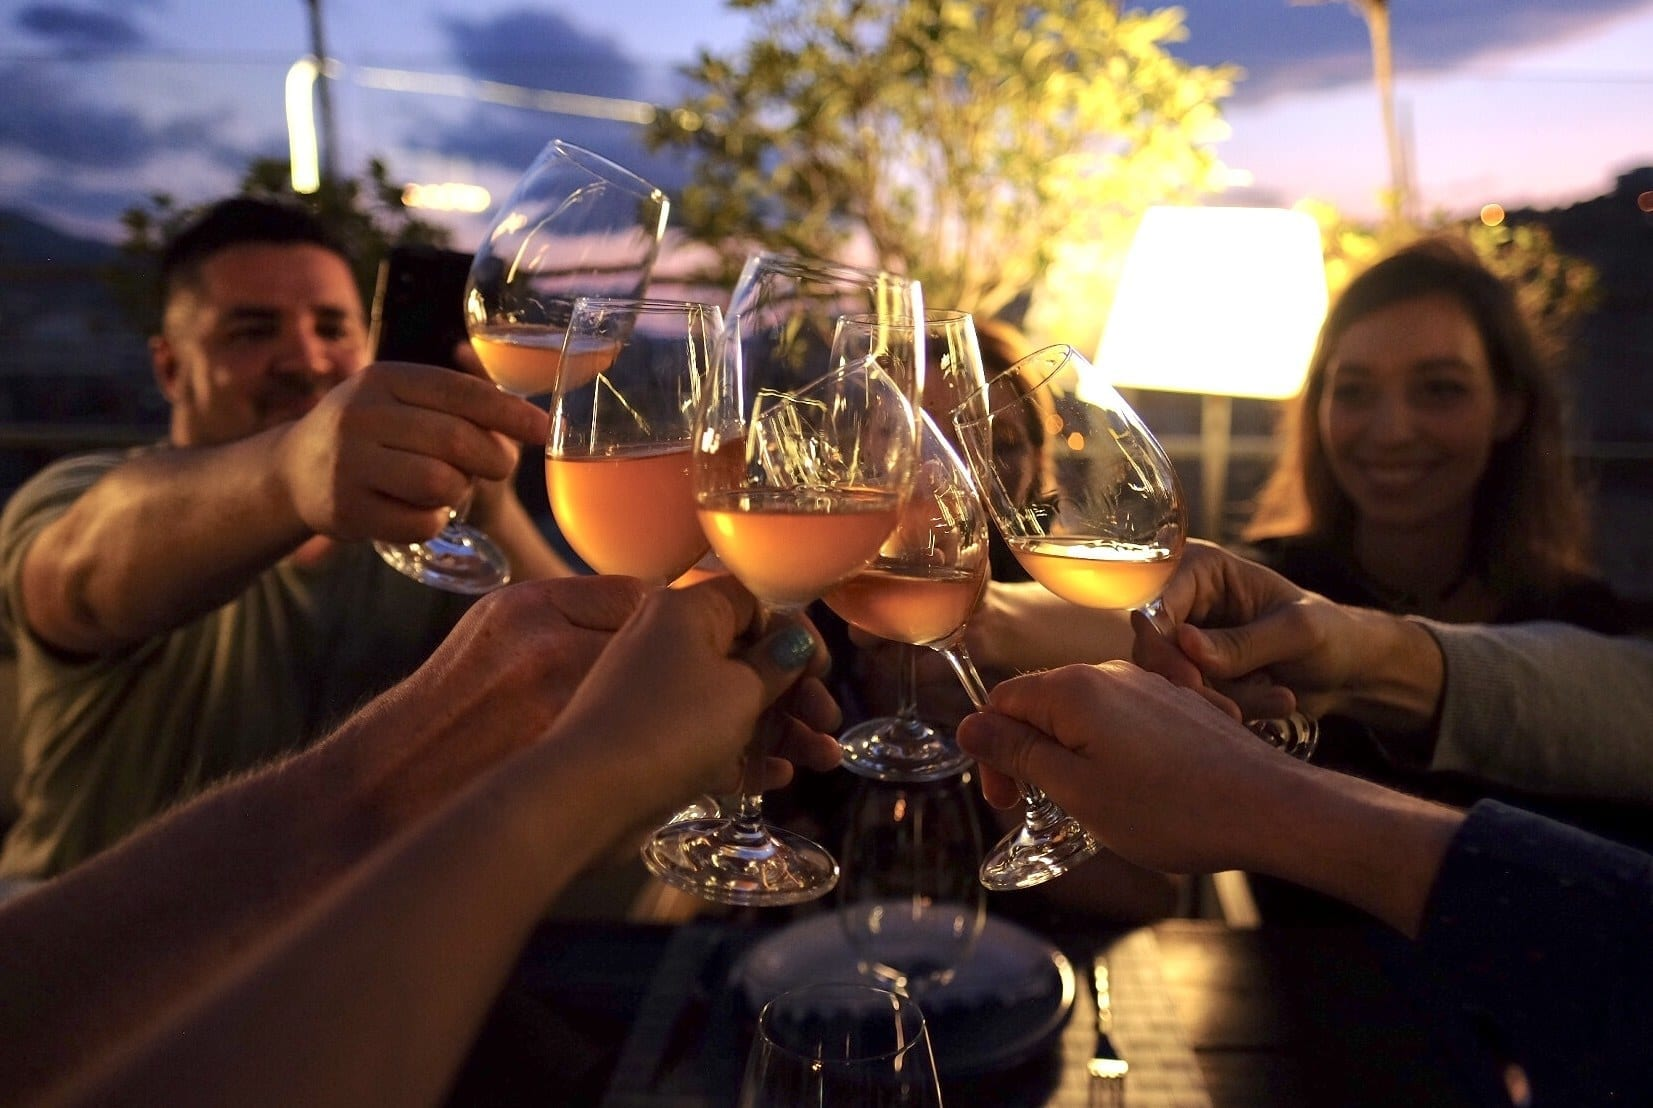 Several people toasting glasses of orange wine on a darkened rooftop at sunset.